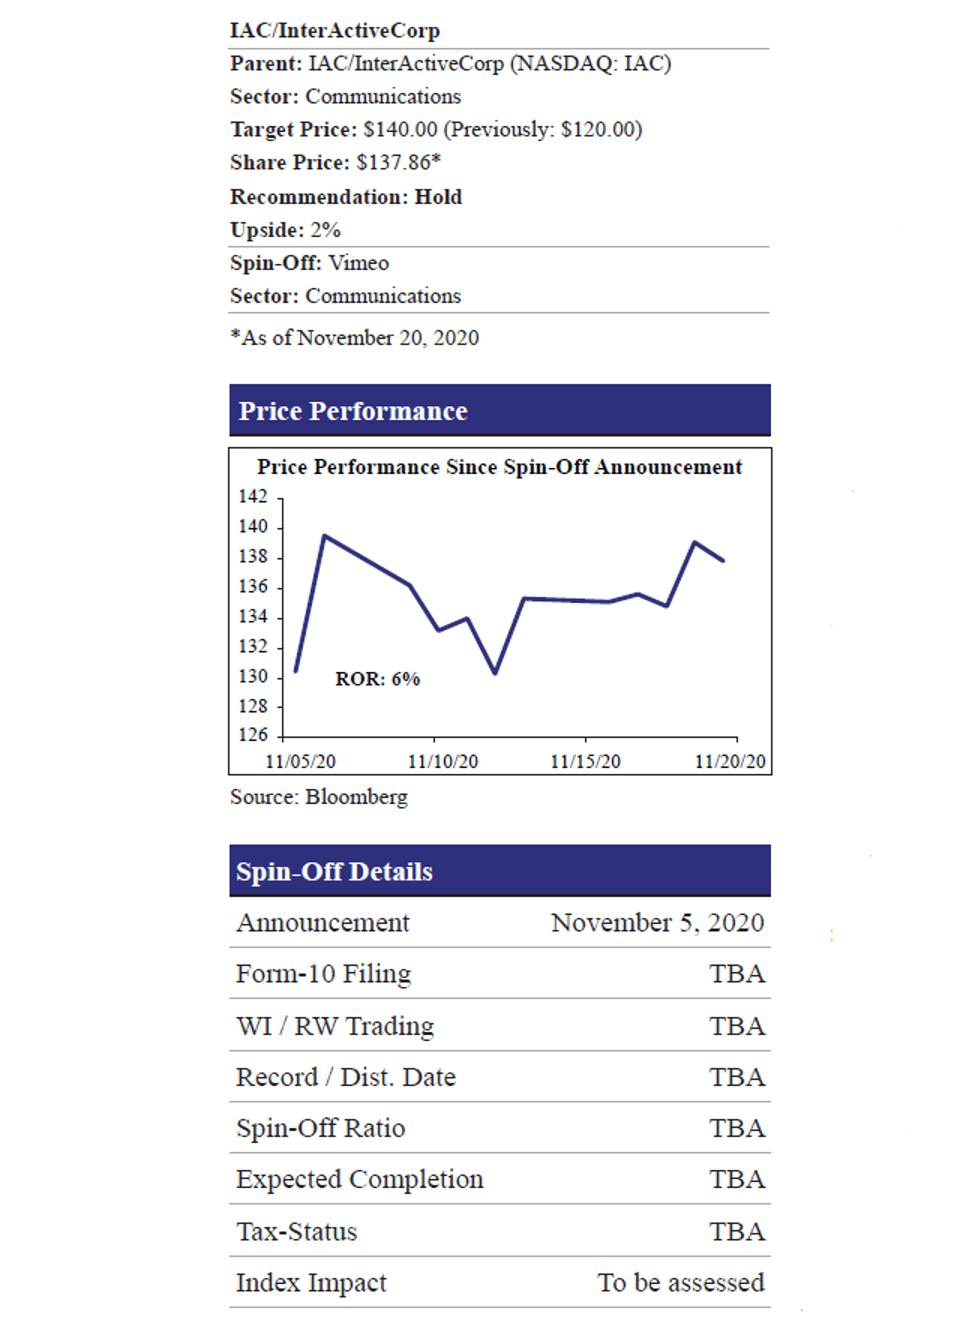 IAC InterActive Price Performance and Spin-Off Details